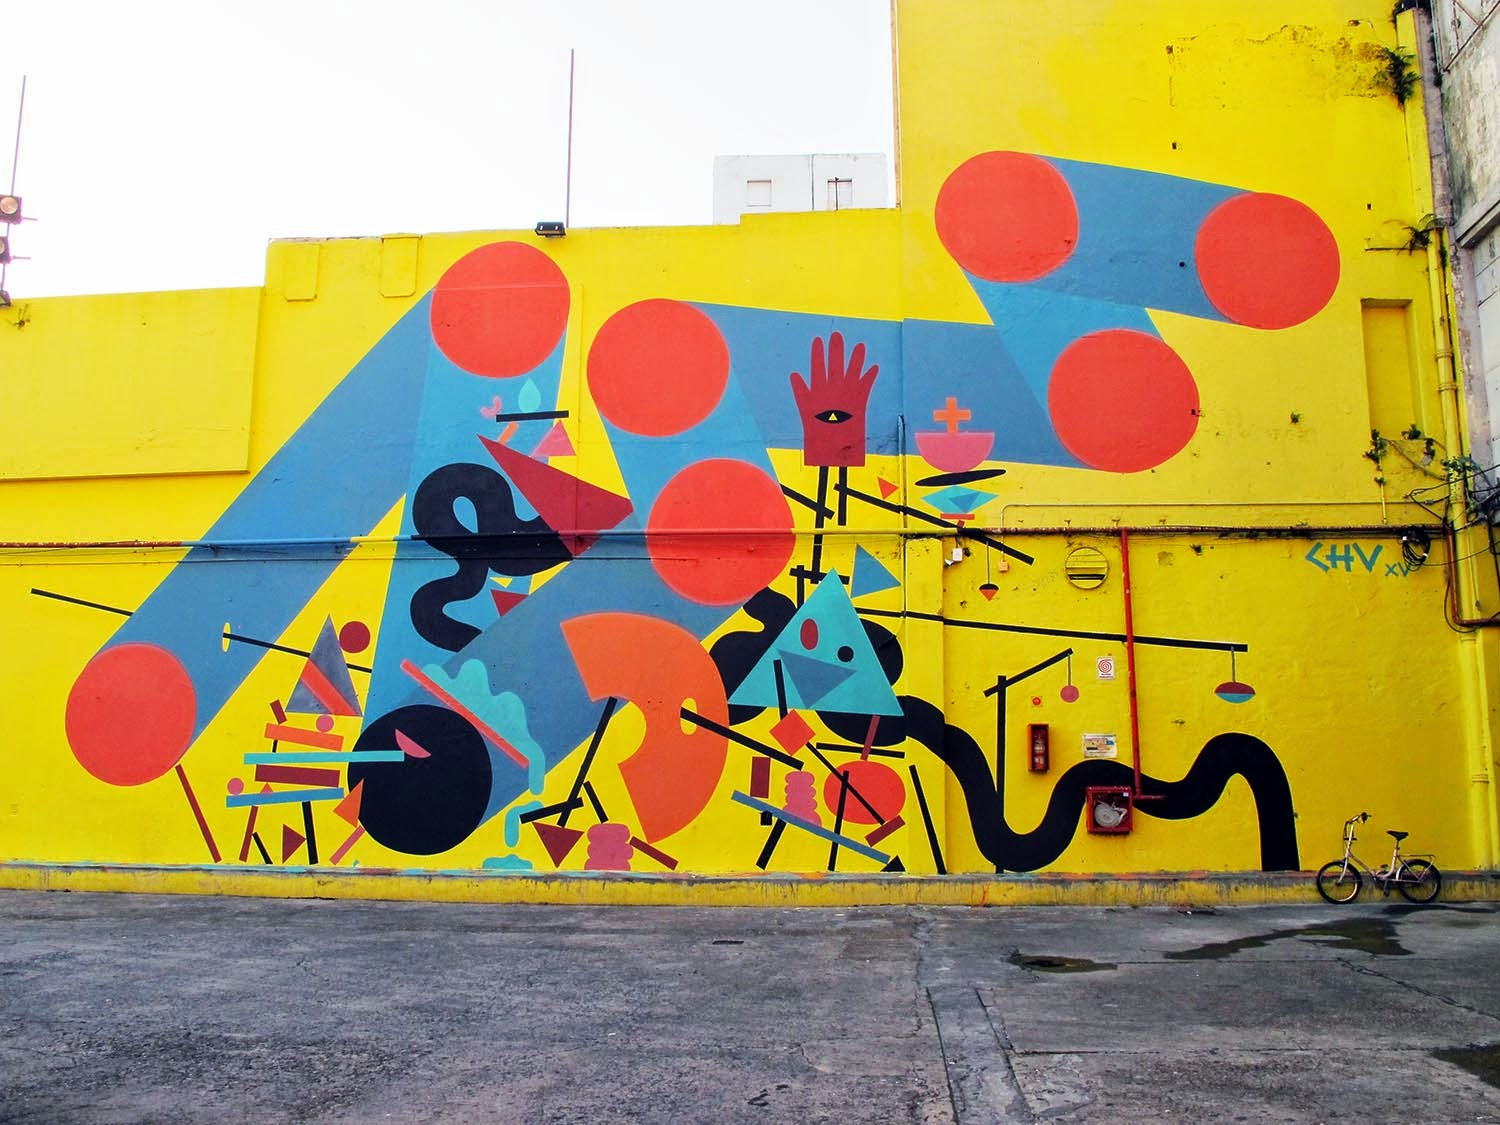 Julian Manzelli aka Chu is currently in Argentina where he spent a few days working on this new piece somewhere on the streets of Buenos Aires.